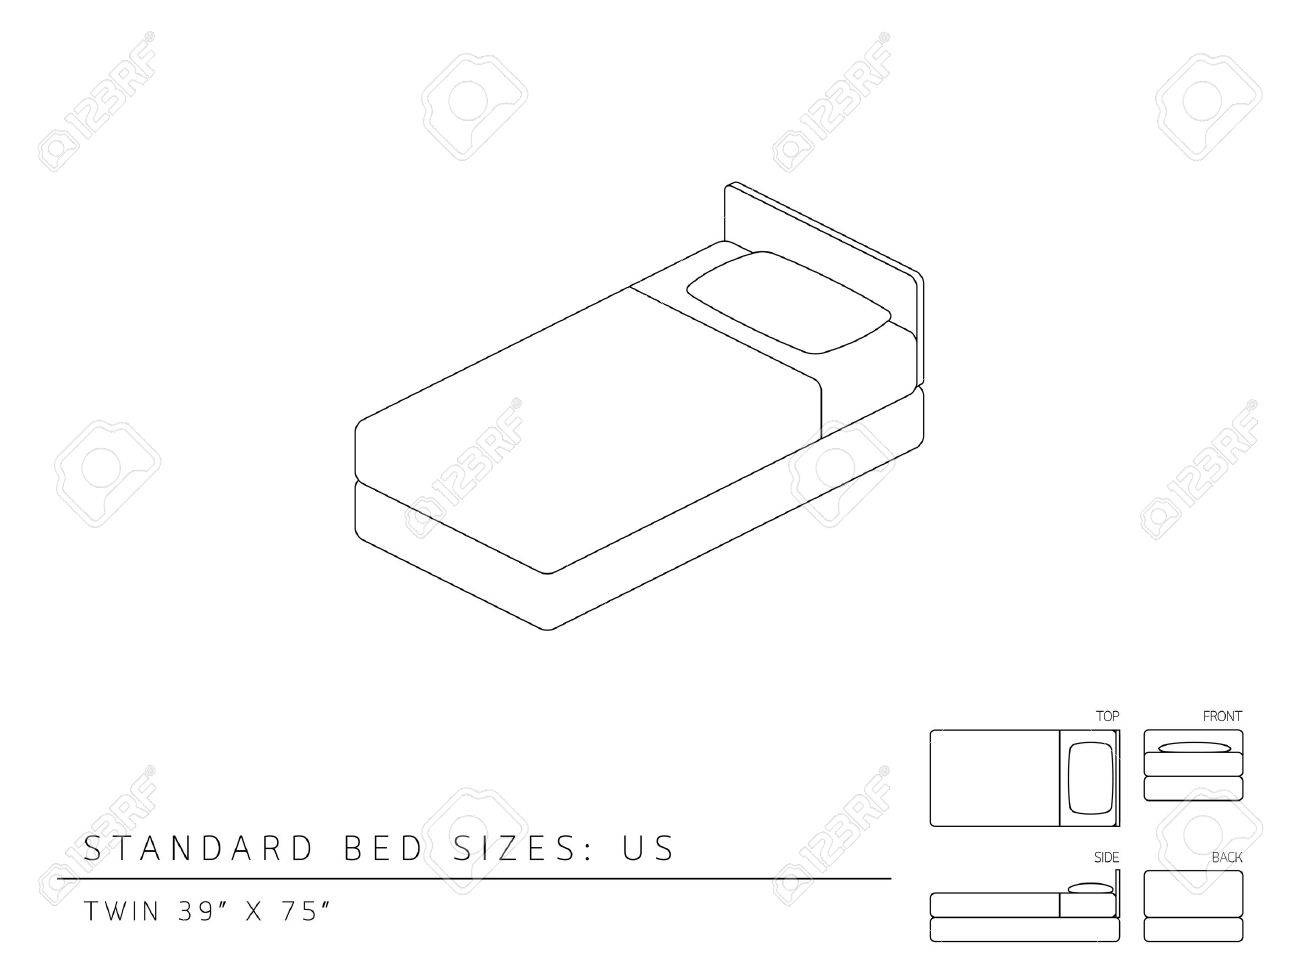 Standard Bed Sizes Of Us (United States Of America) Twin Size ...